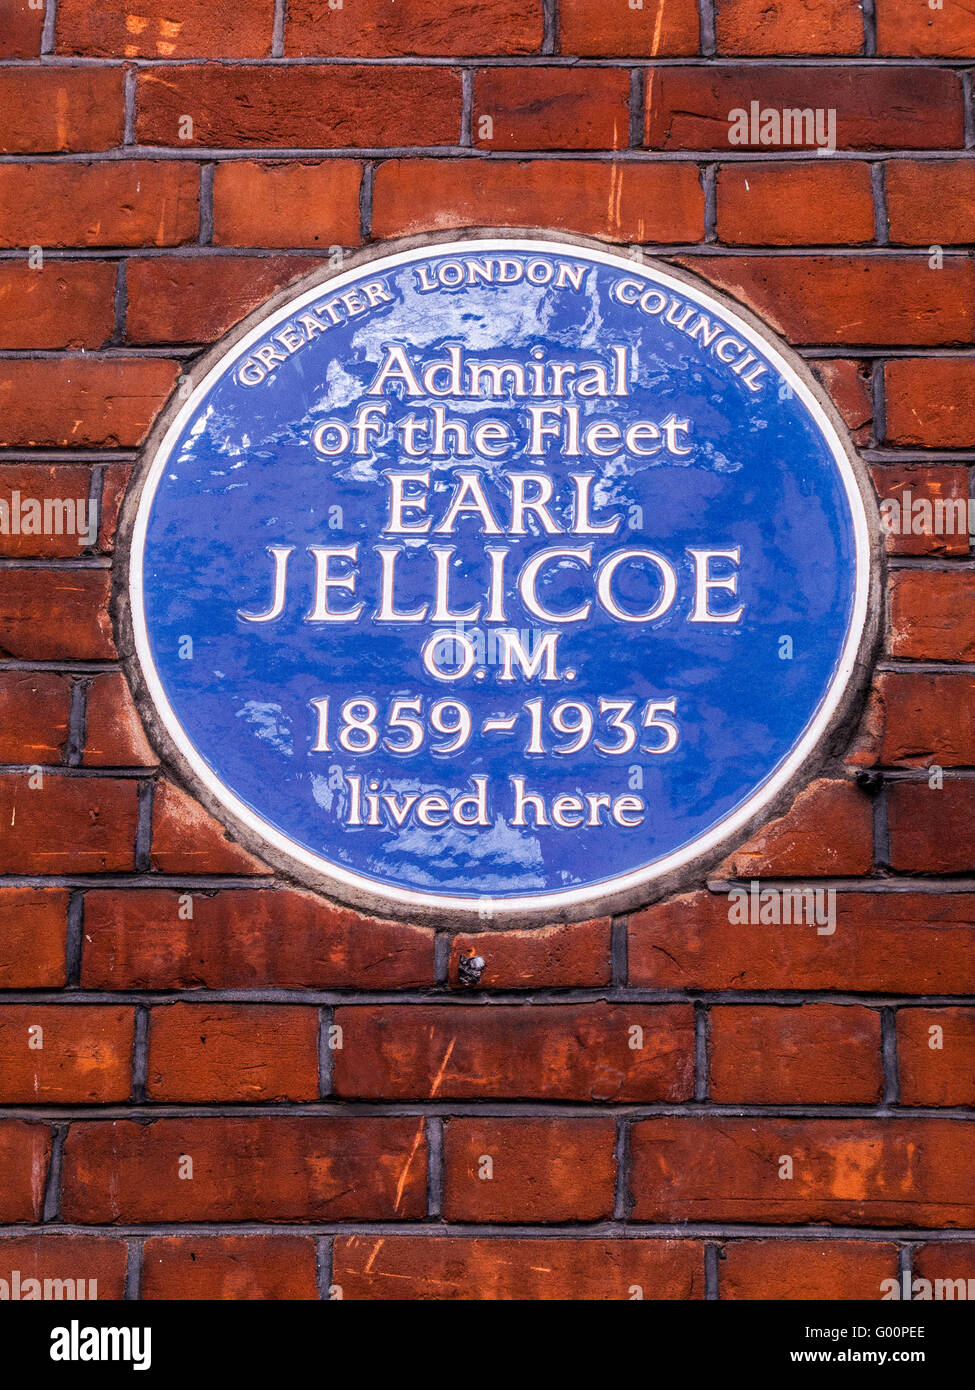 Earl Jellicoe, Admiral, blue plaque, London - Stock Image